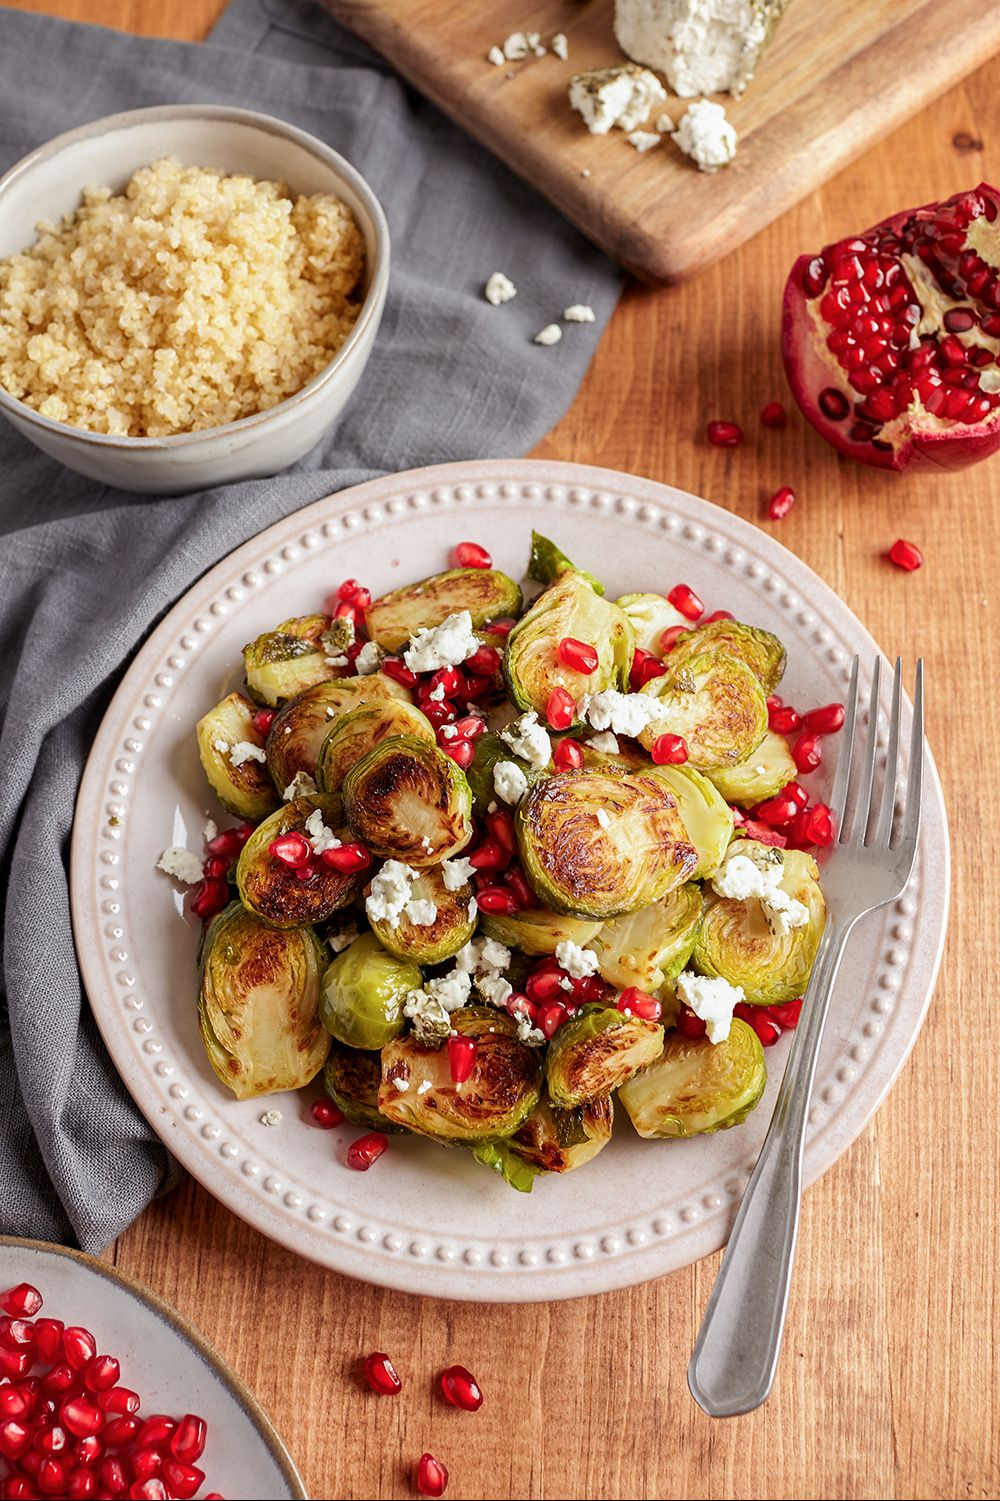 Grilled Brussels Sprouts with Goat Cheese